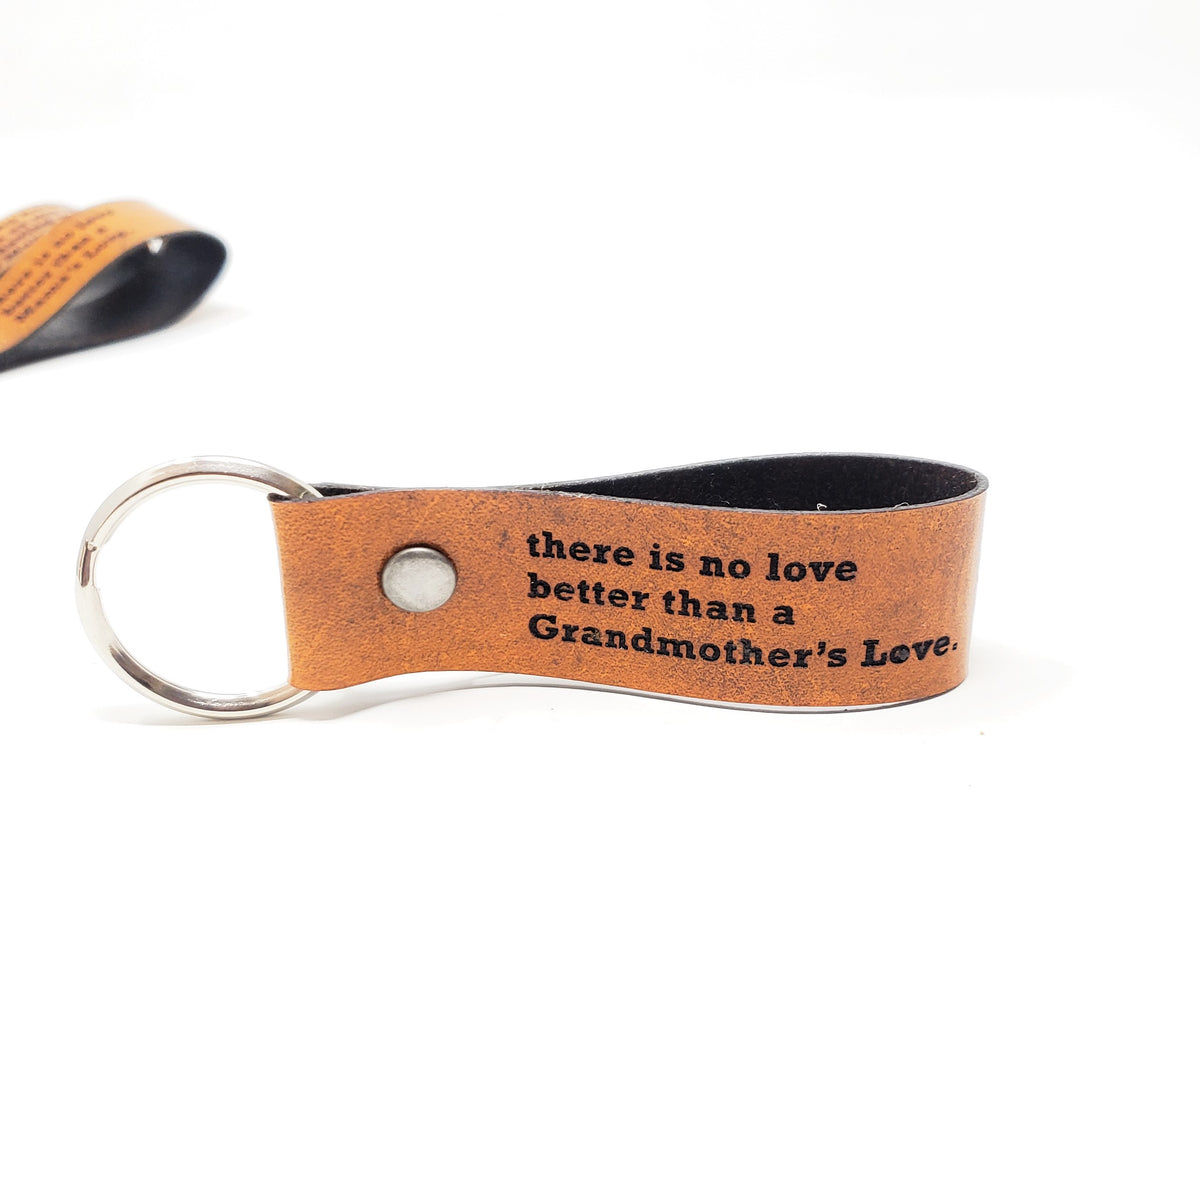 Engraved Leather Keychain - There is No Love Better Than a Grandmother's Love